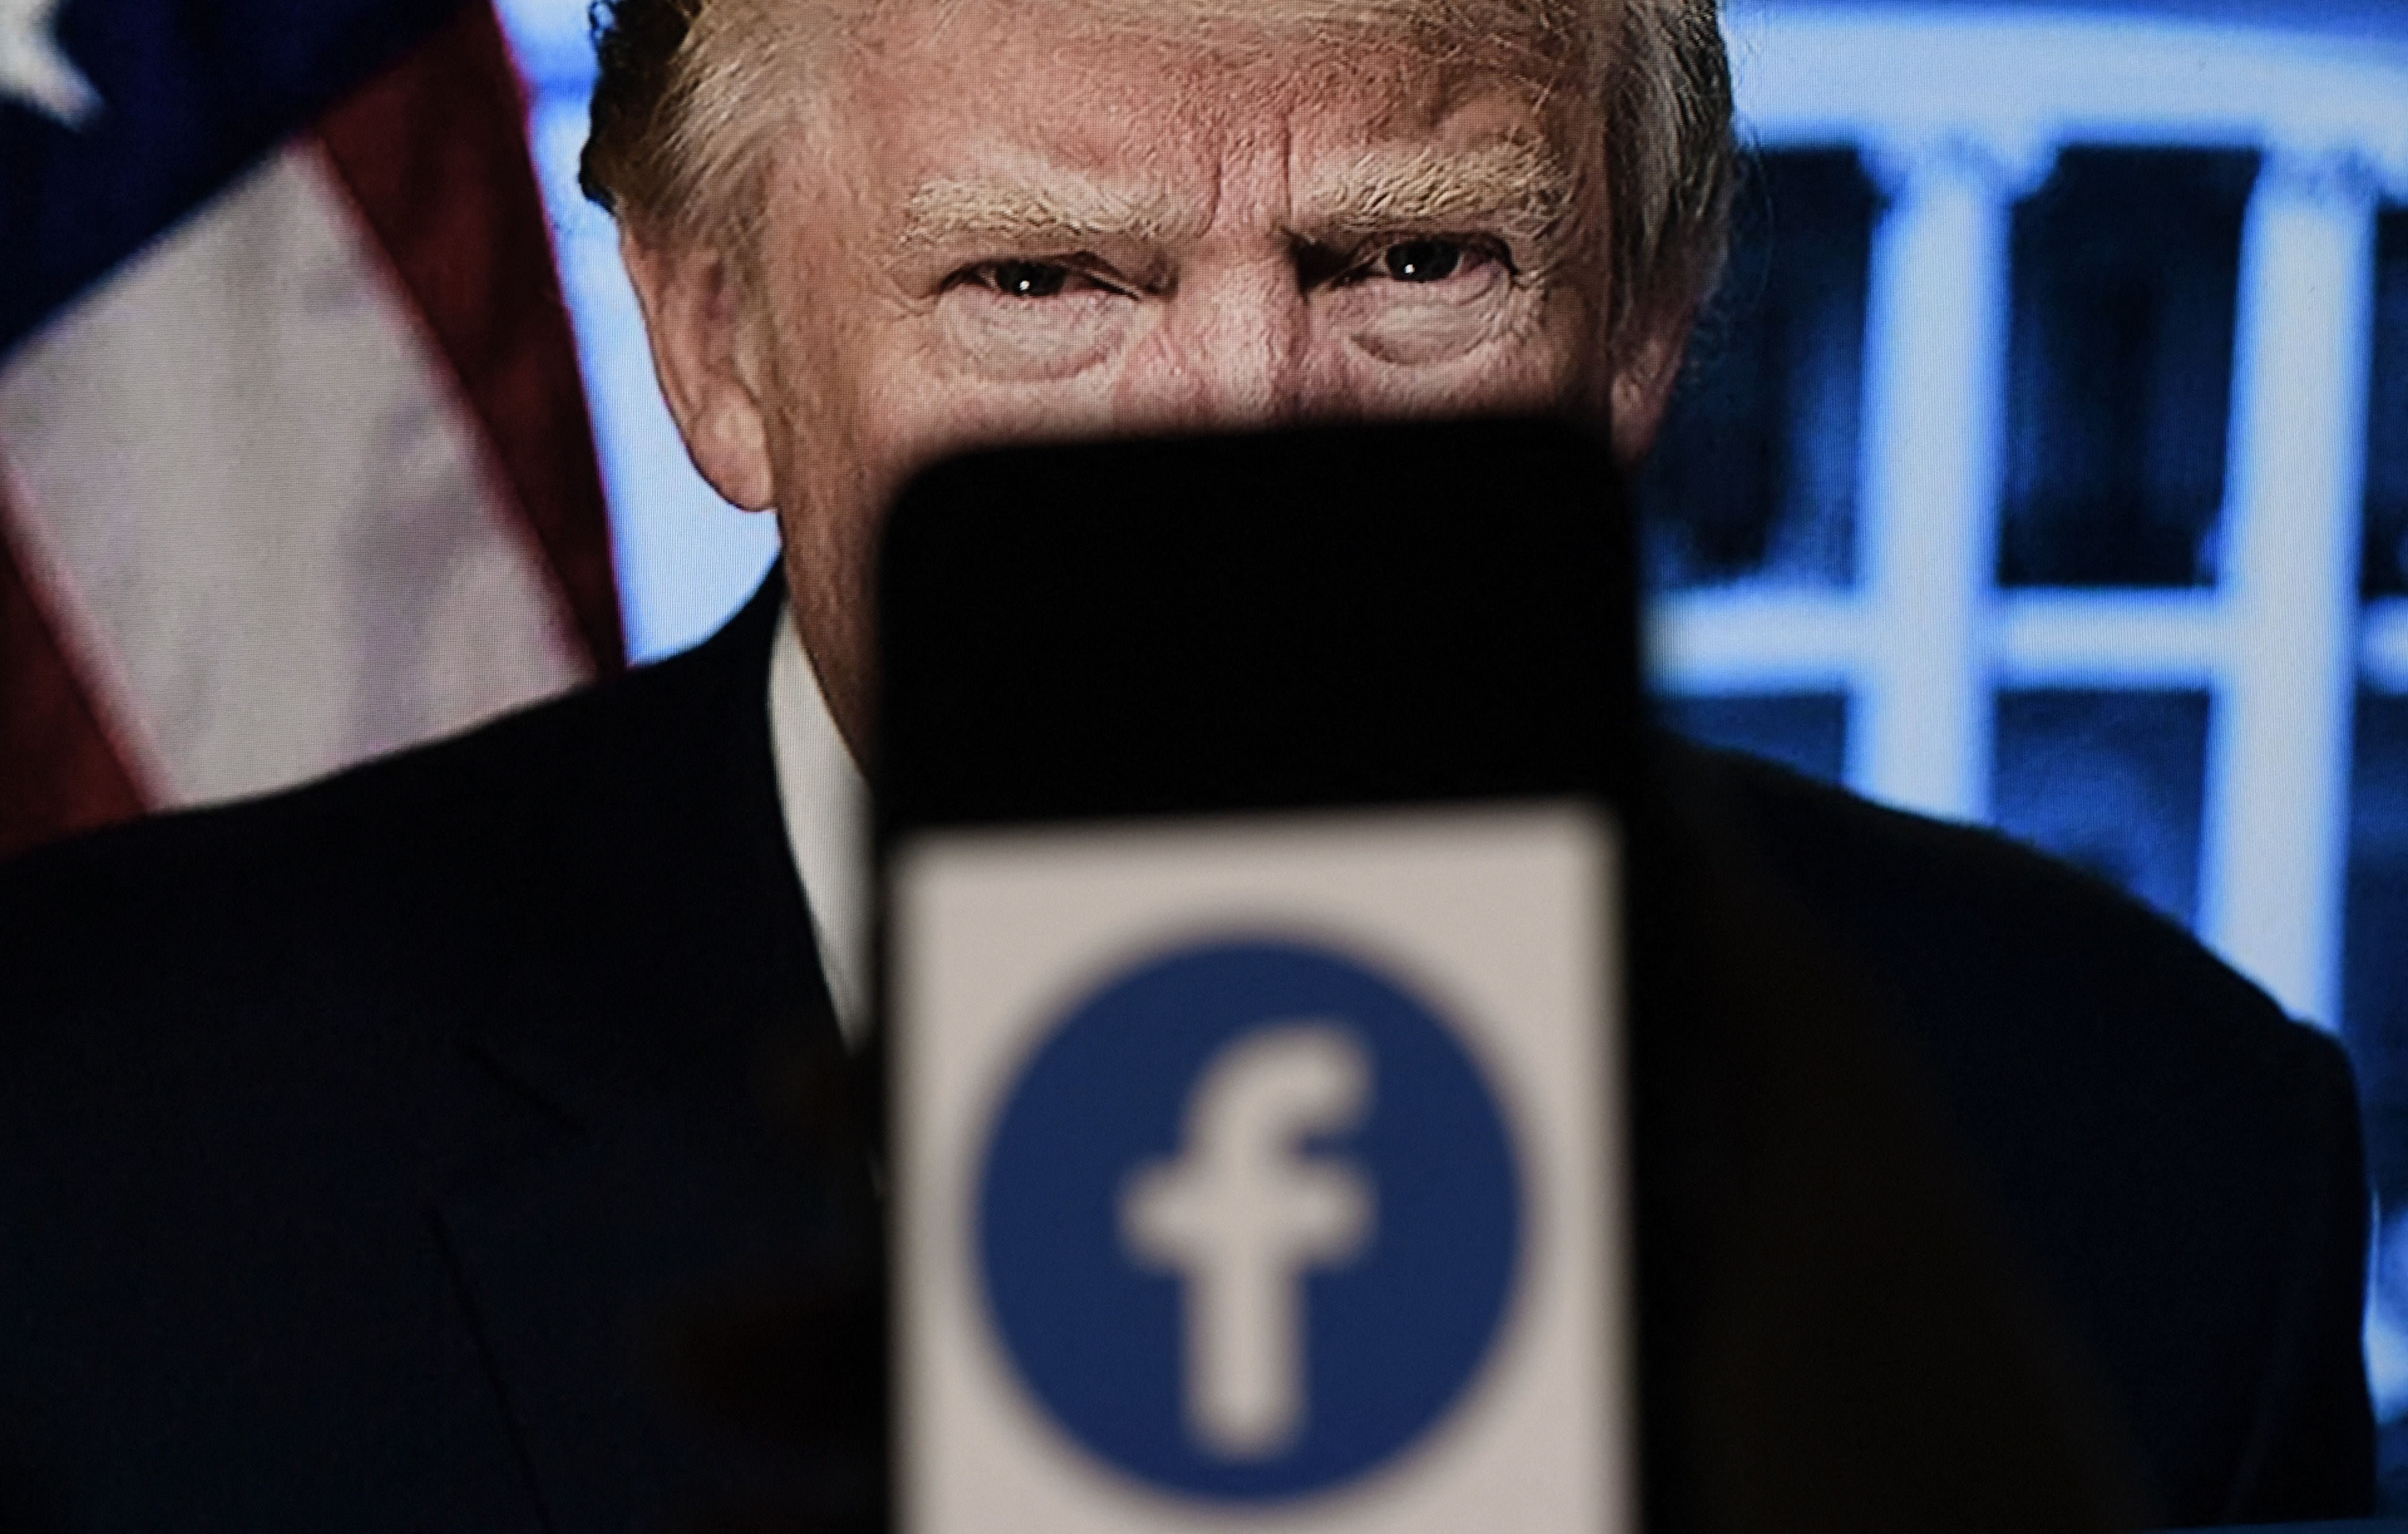 Talking Tech: Facebook s Oversight Board upholds Trump ban, but nixes indefinite suspensions